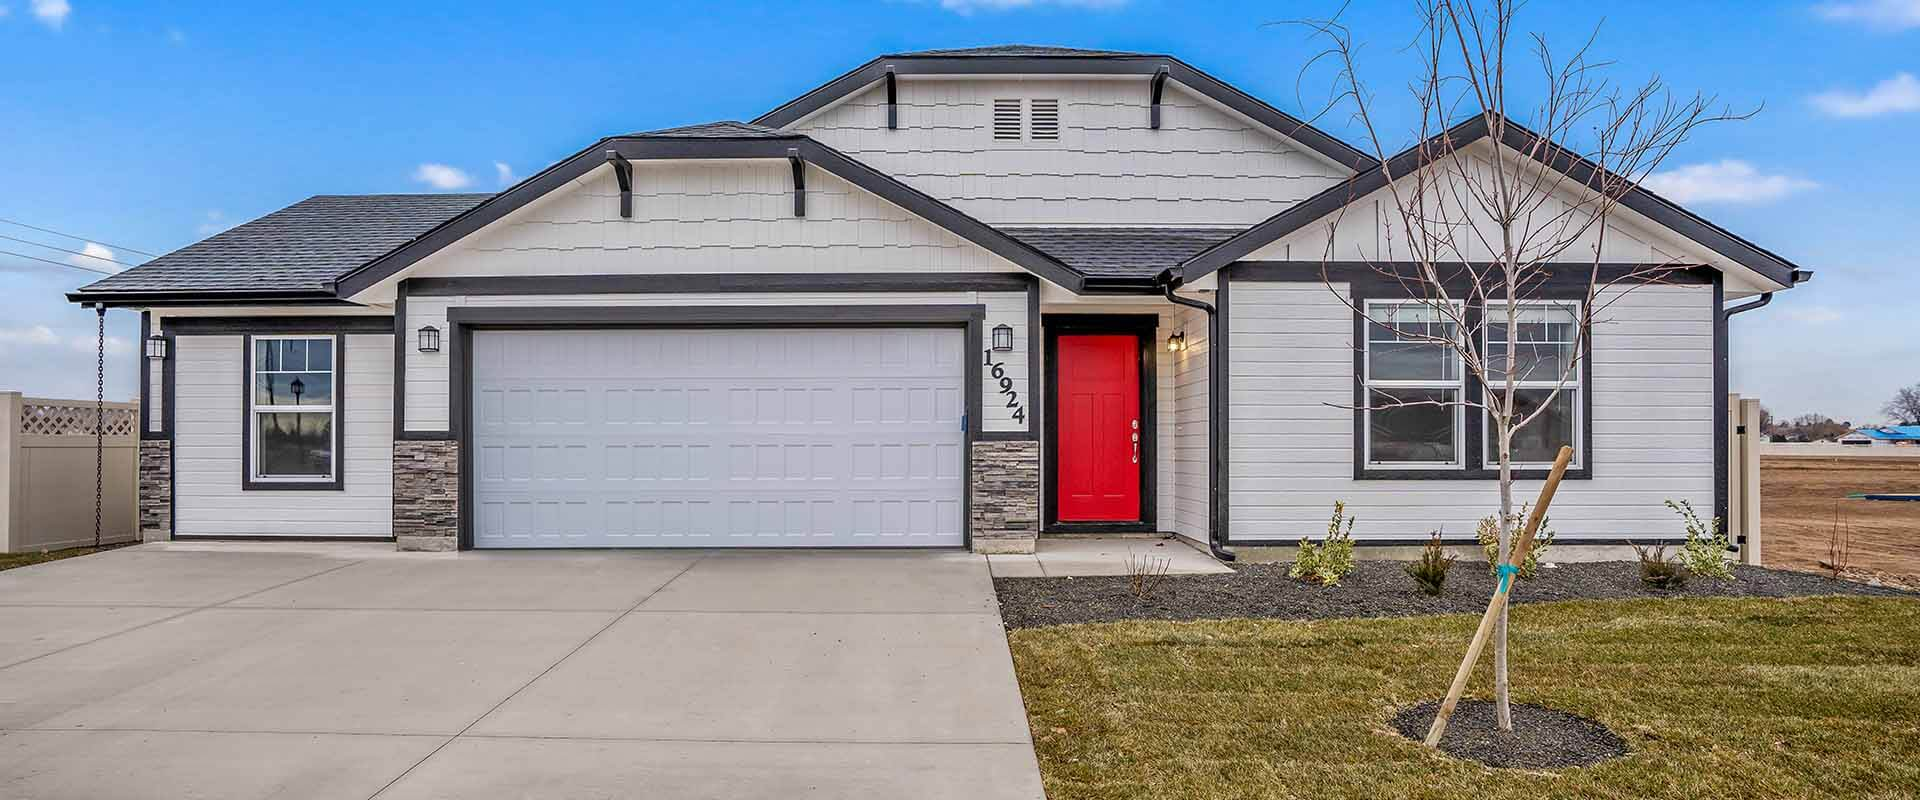 Crestwood_Hubble_Homes_New_Homes_Boise_Exterior.jpg